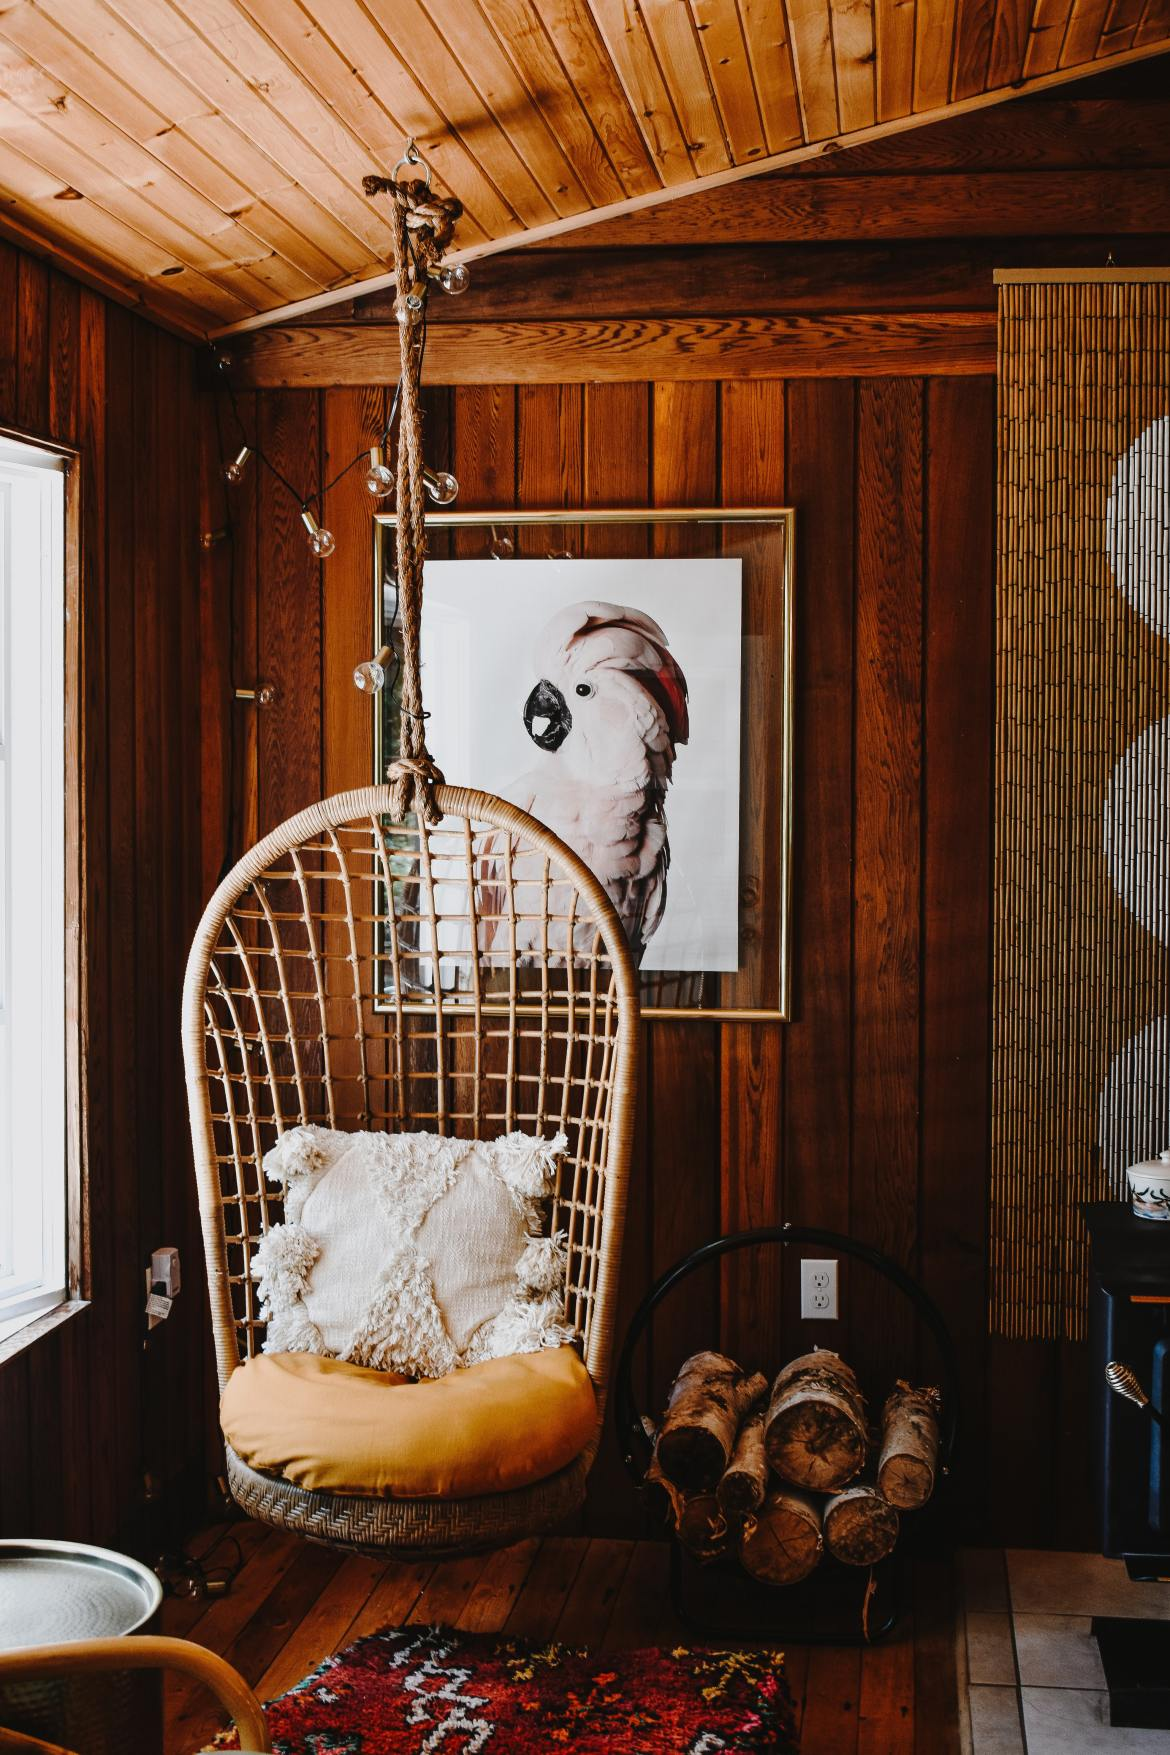 DIY Room Decor You Have To Follow For The Cutest Bedroom